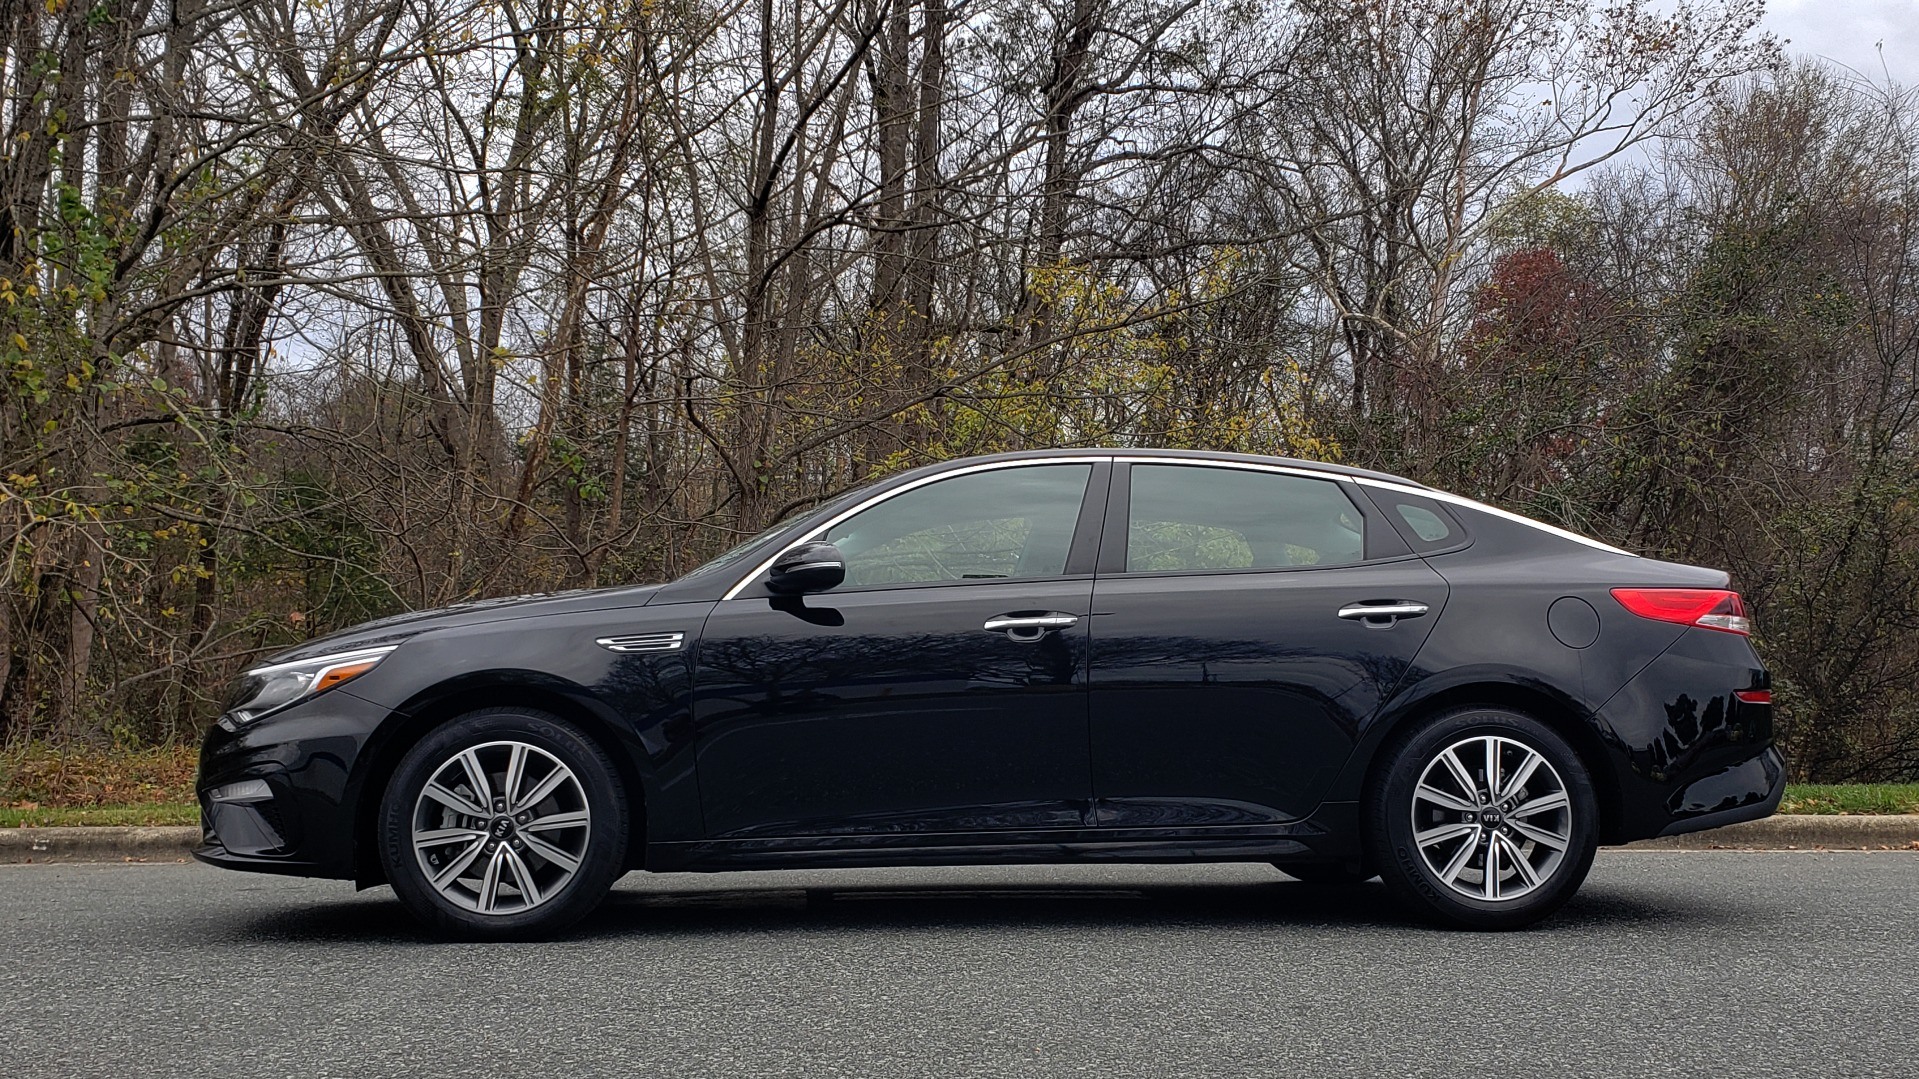 Used 2019 Kia OPTIMA LX AUTO / 2.4L 4-CYL / 6-SPD AUTO / REARVIEW / LOW MILES for sale $17,995 at Formula Imports in Charlotte NC 28227 2